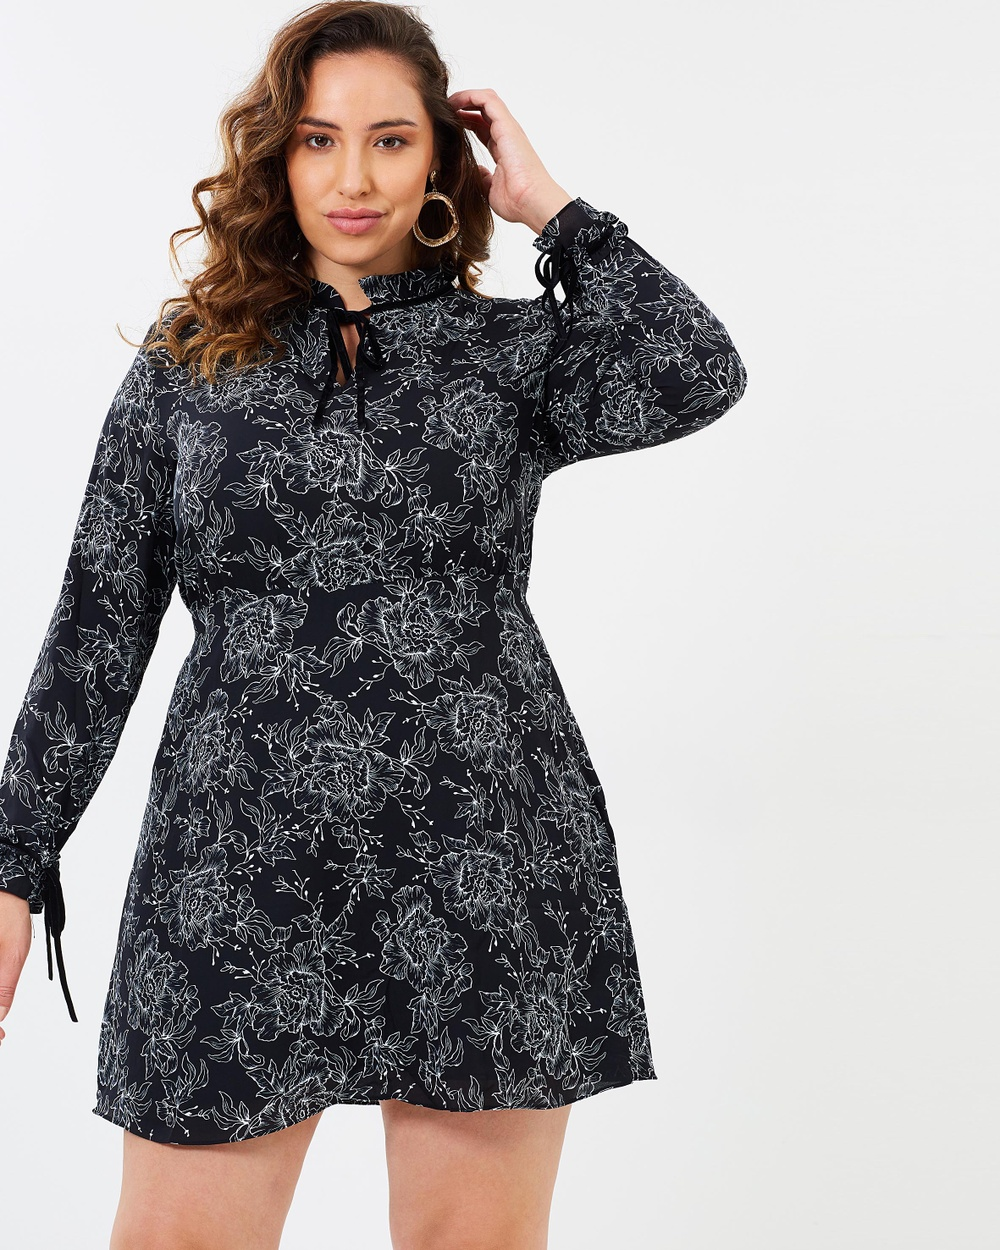 Atmos & Here Curvy ICONIC EXCLUSIVE Genivieve High Neck Dress Printed Dresses Stencil Floral ICONIC EXCLUSIVE Genivieve High Neck Dress